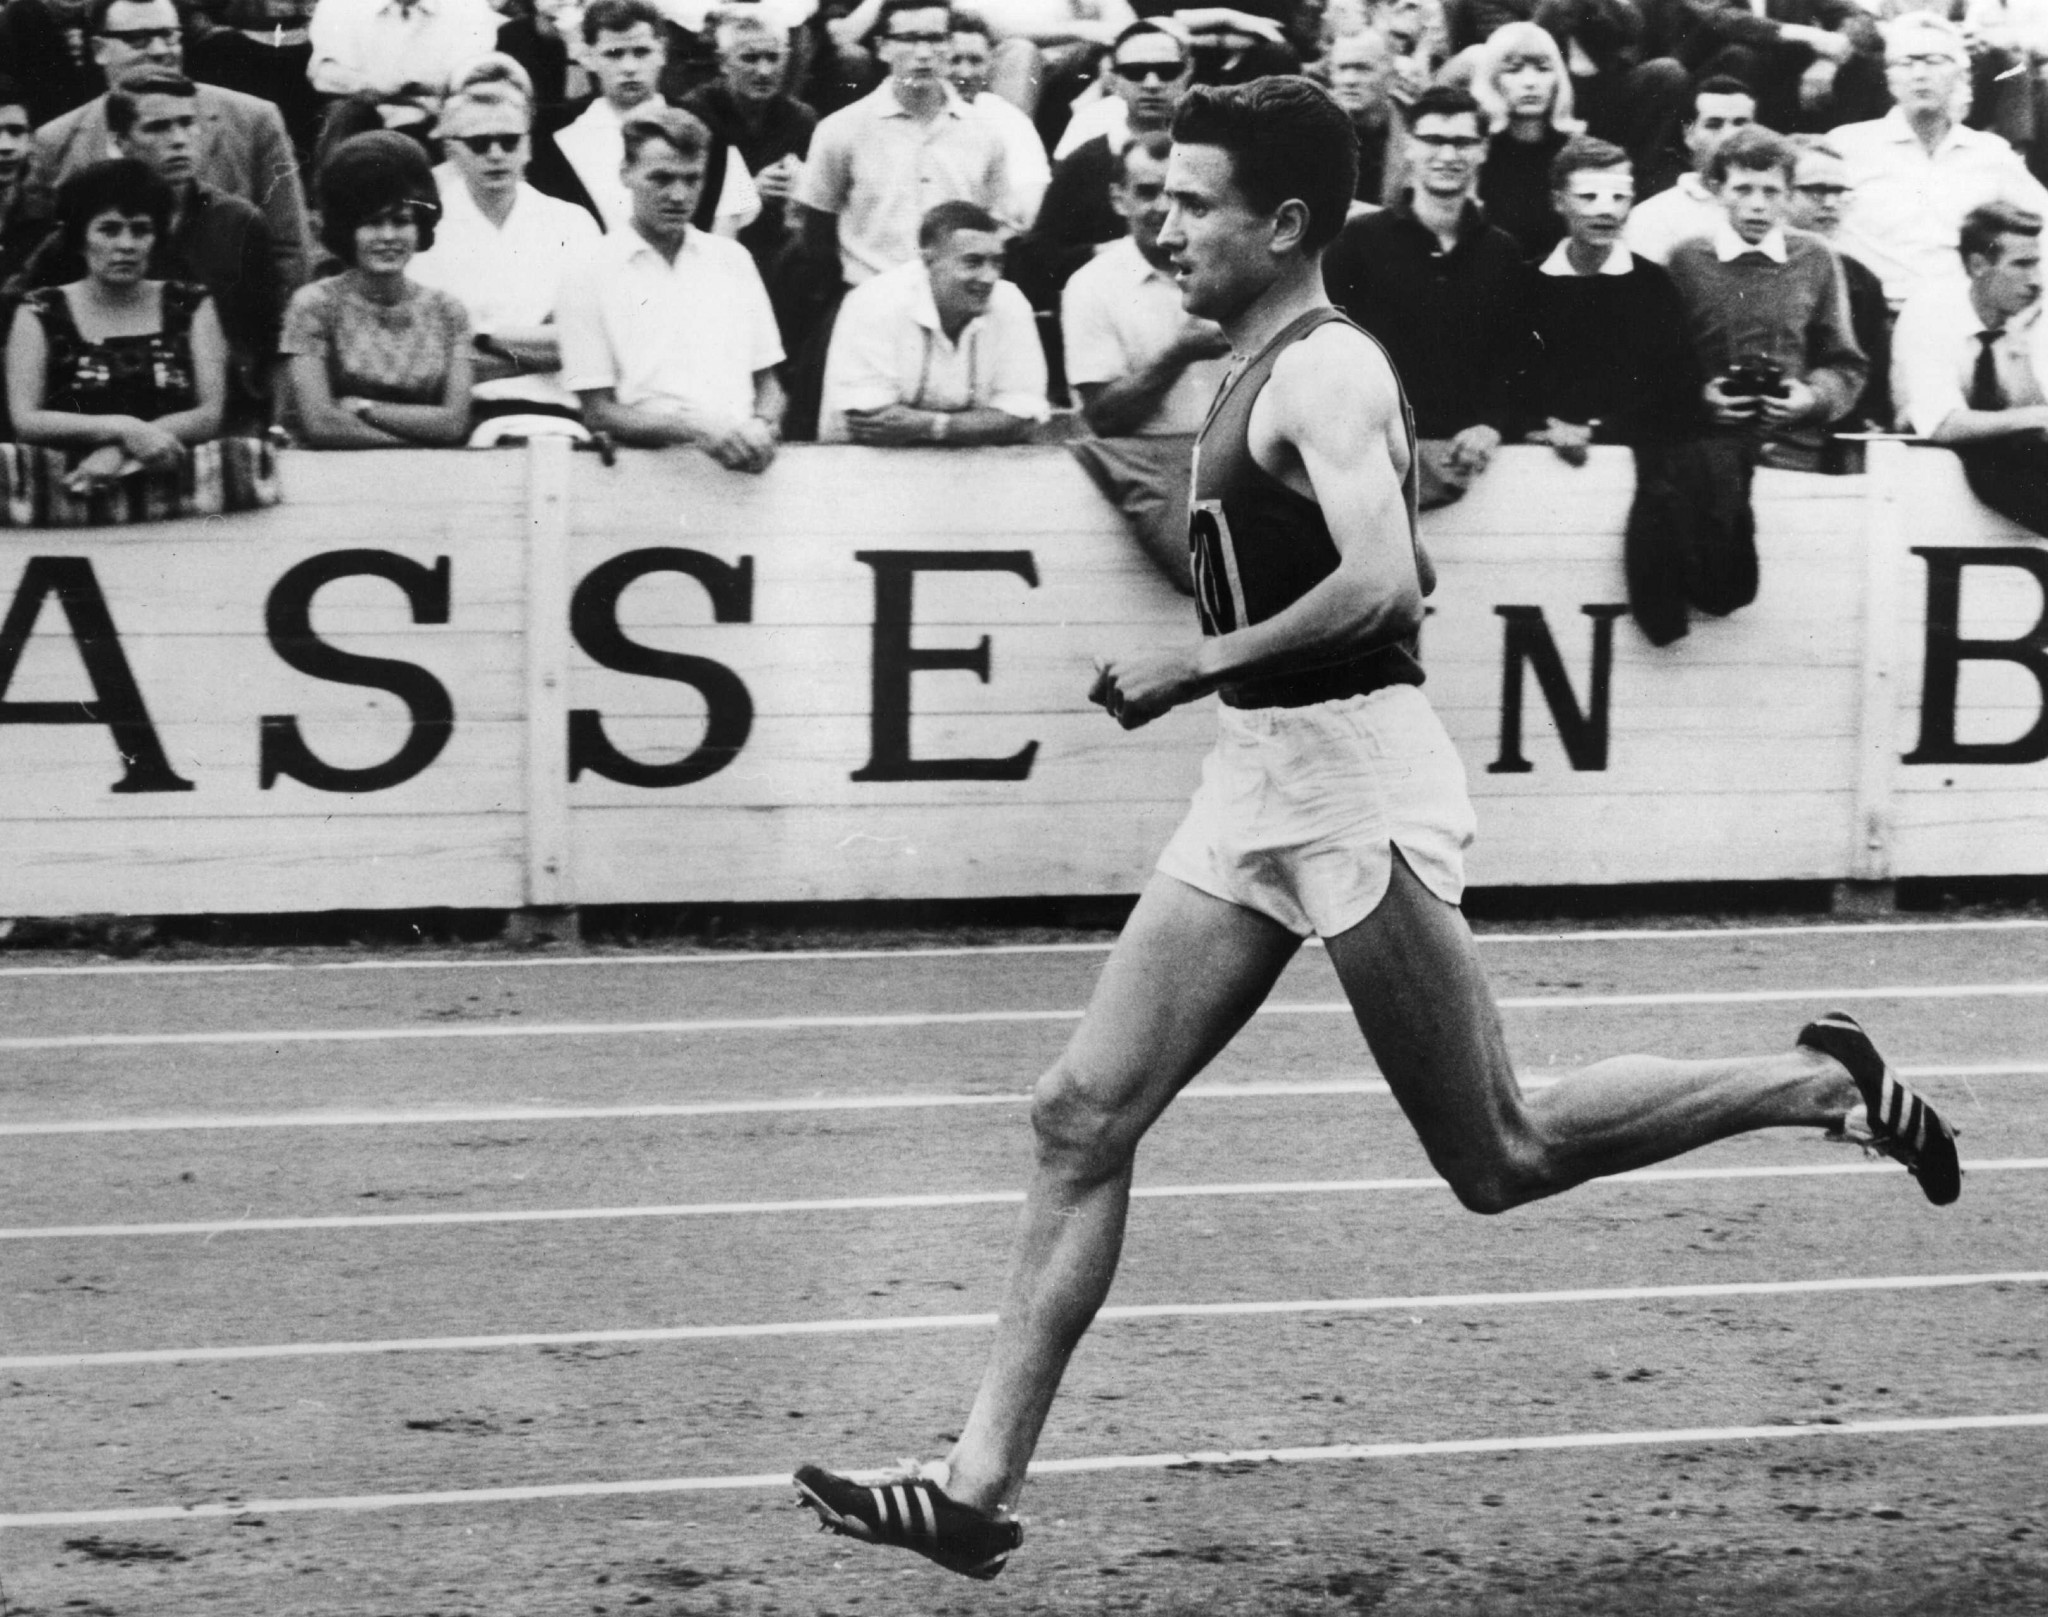 Michel Jazy, who won Olympic 1500m silver, European 1500 and 5000m gold and broke the mile record, roomed with Alain Mimoun as a 20-year-old at Melbourne 1956 - and learned from him ©Getty Images